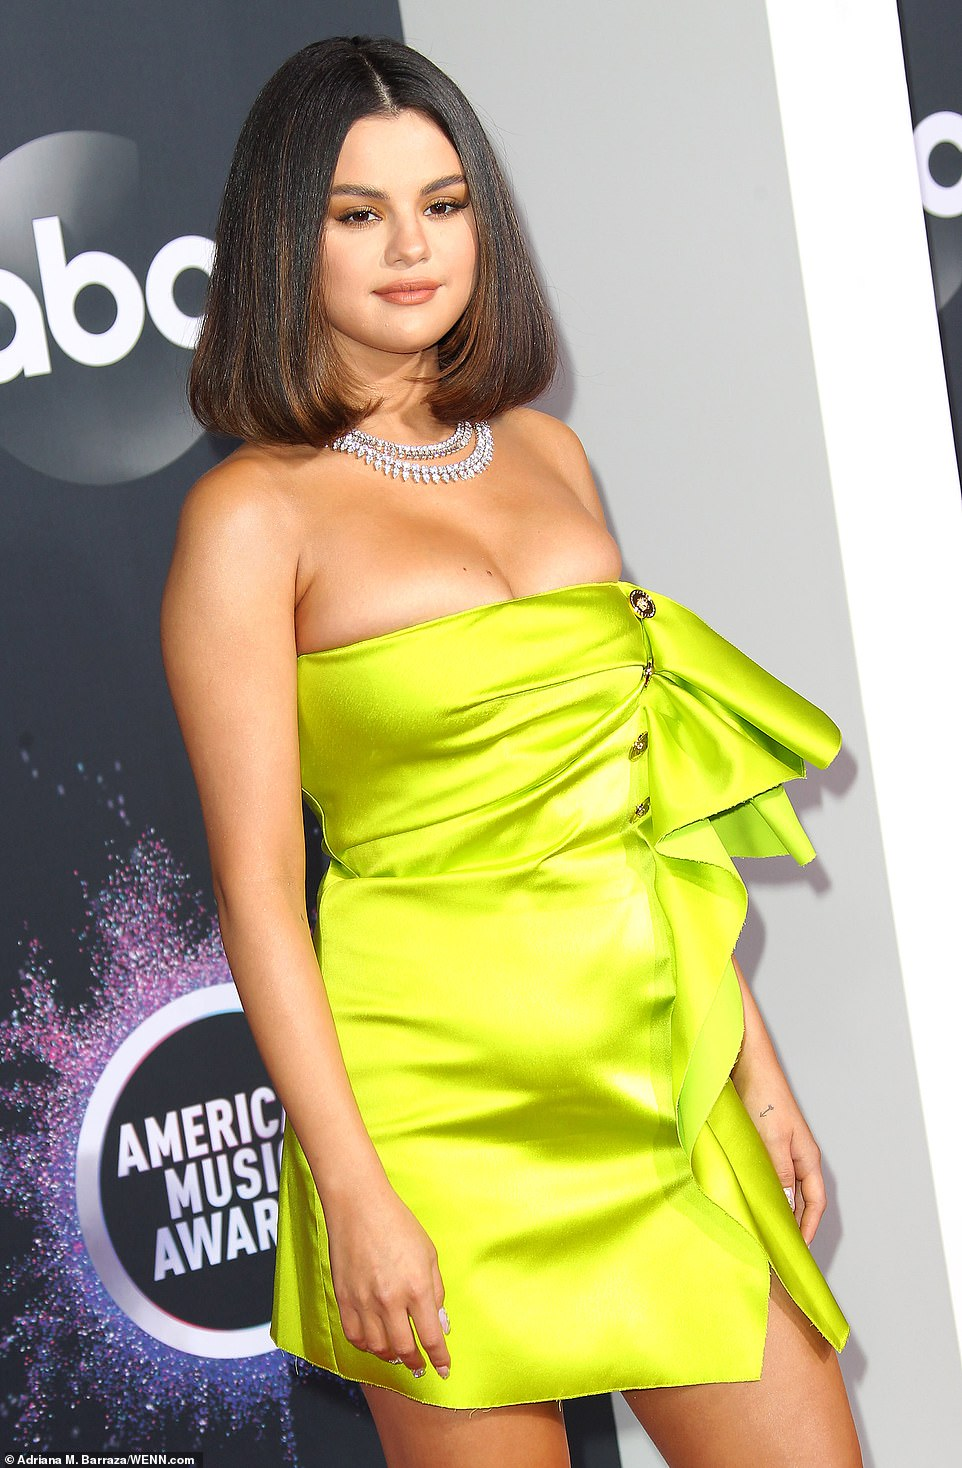 Selena Gomez shows off cleavage at the 2019 American Music Awards in LA